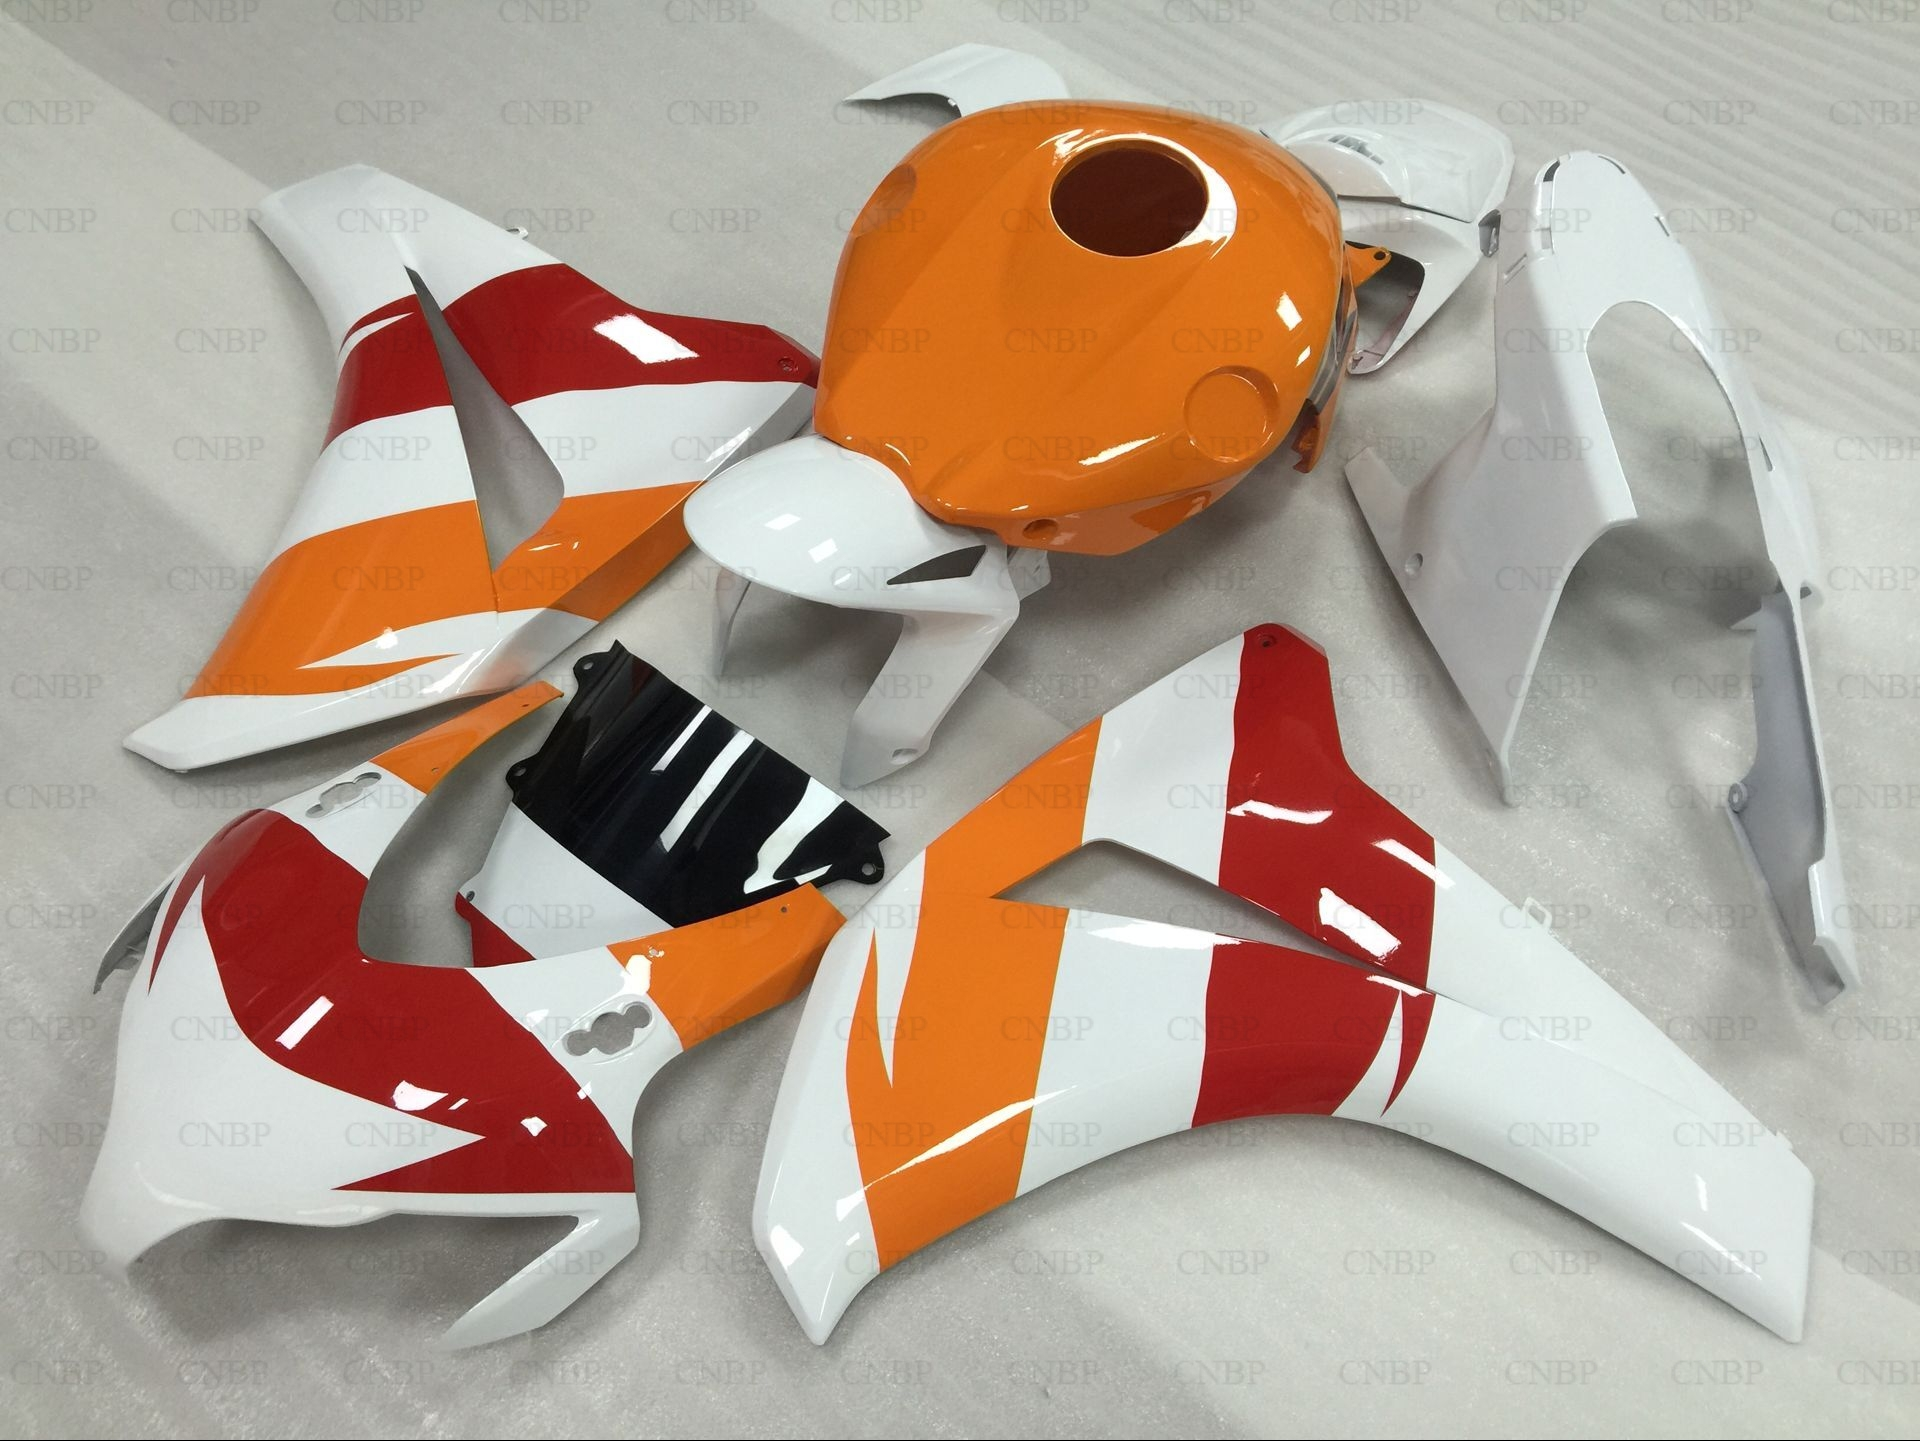 цена на Bodywork for Cbr1000 RR CBR1000RR REPSOL Fireblade CBR 1000 RR 2008 2009 2010 2011 08 09 10 11 Fairing Body Kit